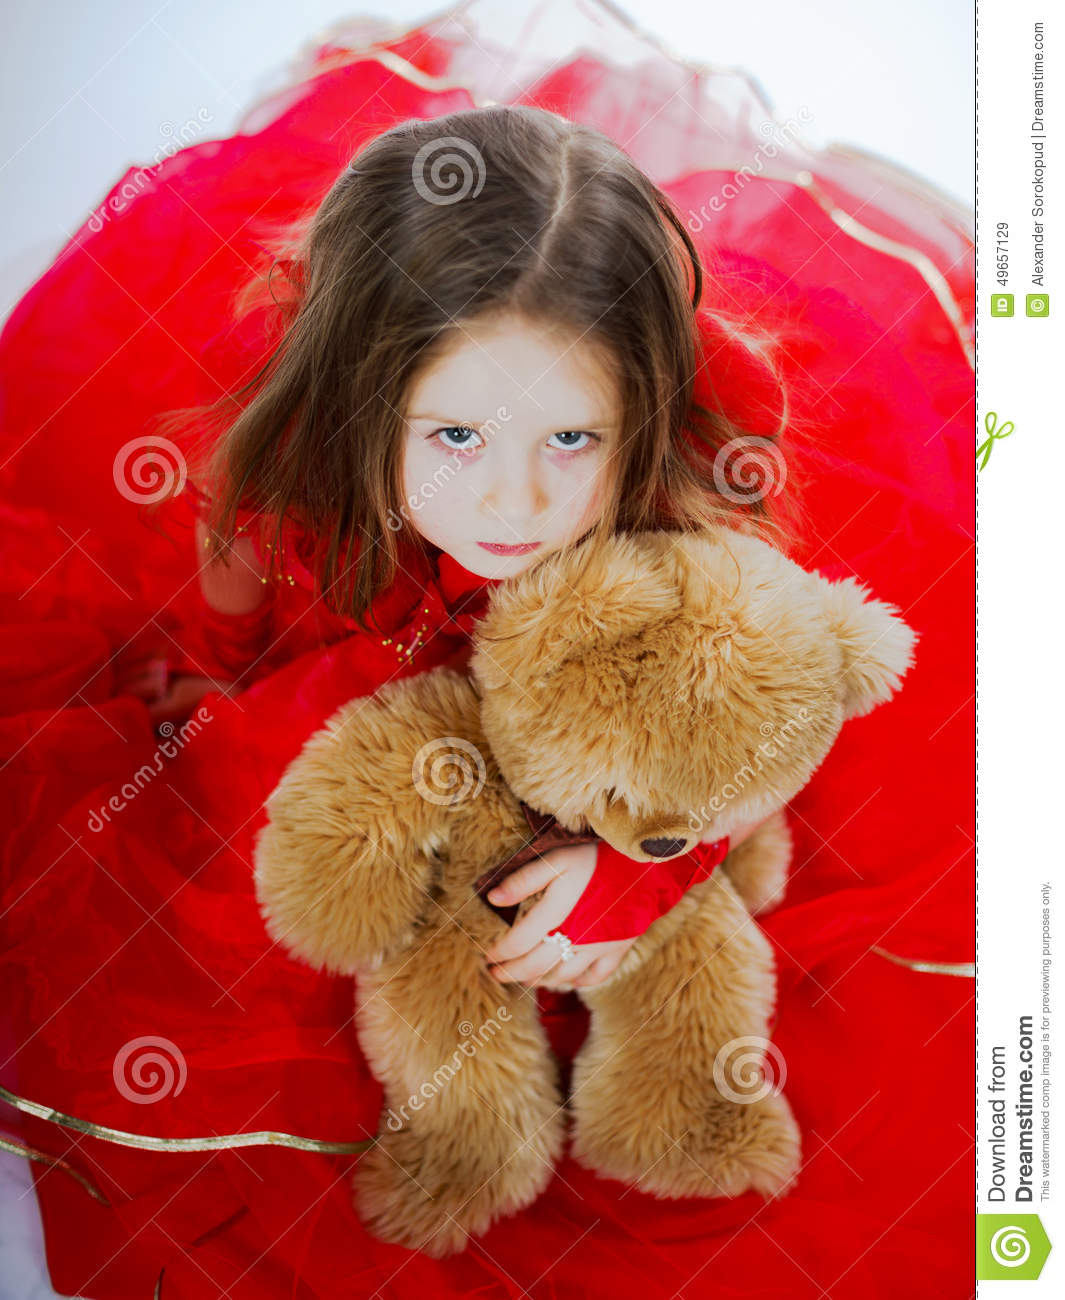 Cute Little Girl With Her Teddy-bear Toy Friend Stock ...Little Girl With Teddy Bear Black And White